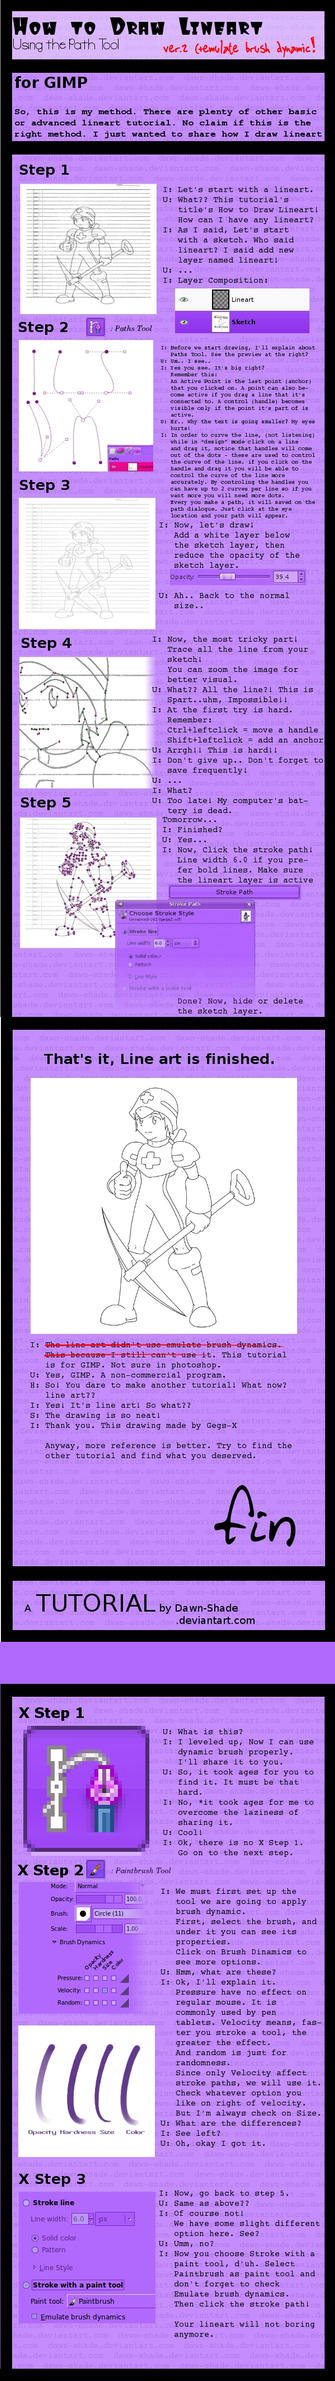 Line Art Using Gimp : Line art tutorial v using gimp by dawn shade on deviantart